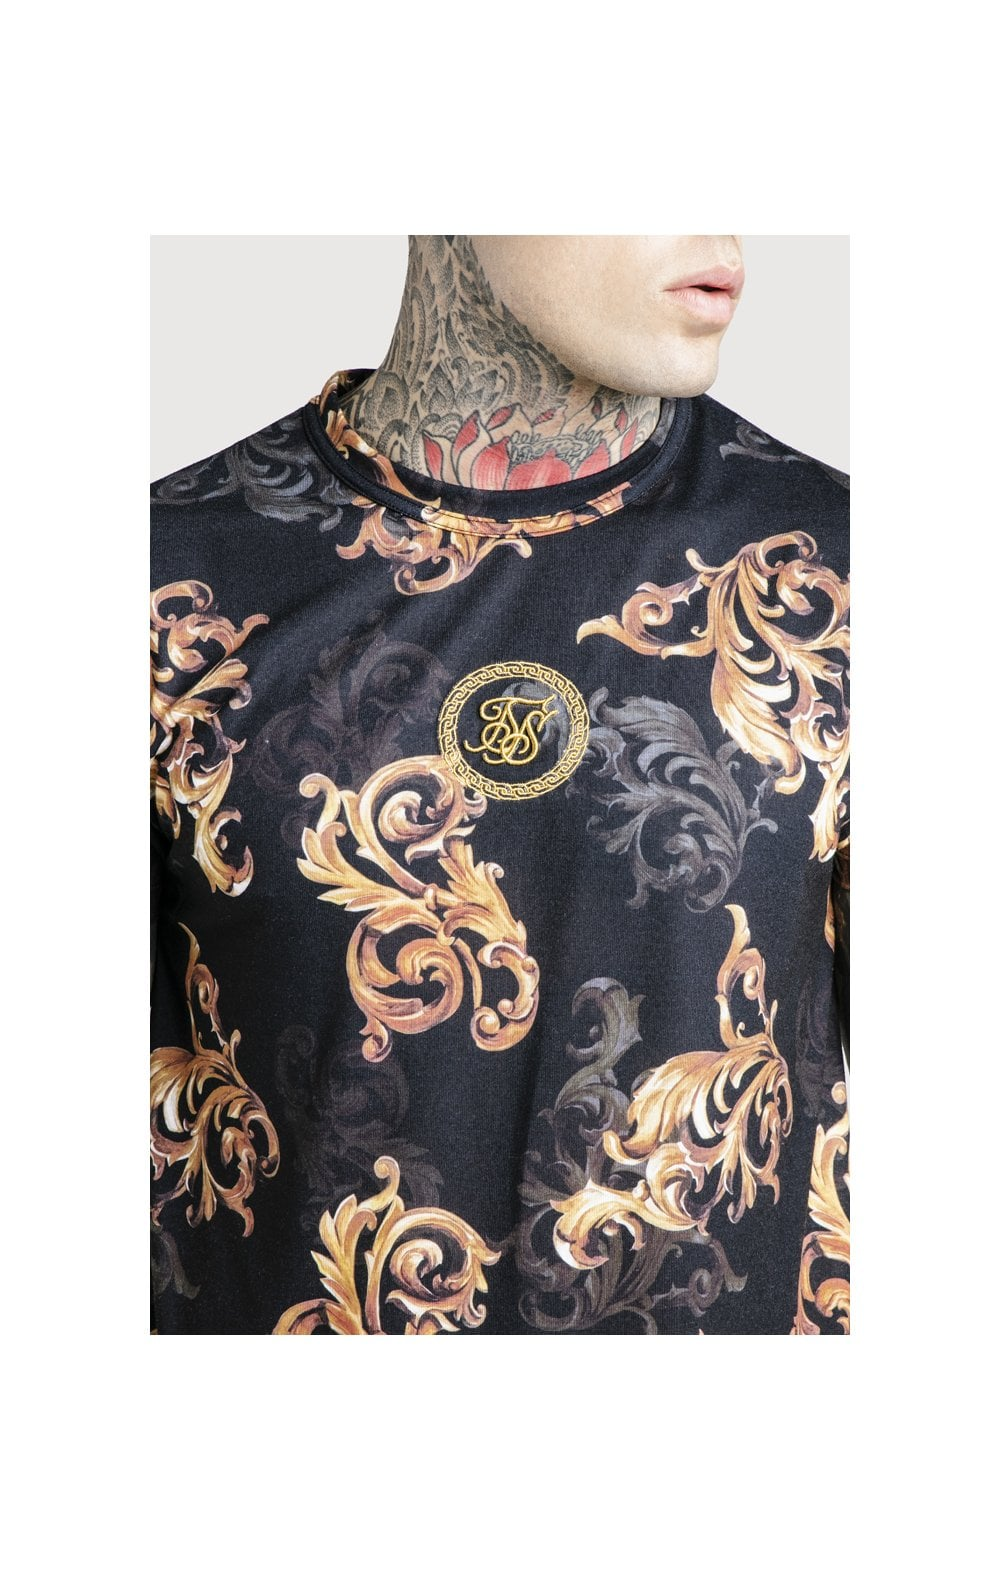 SikSilk x Dani Alves Reverse Collar Tee - Black